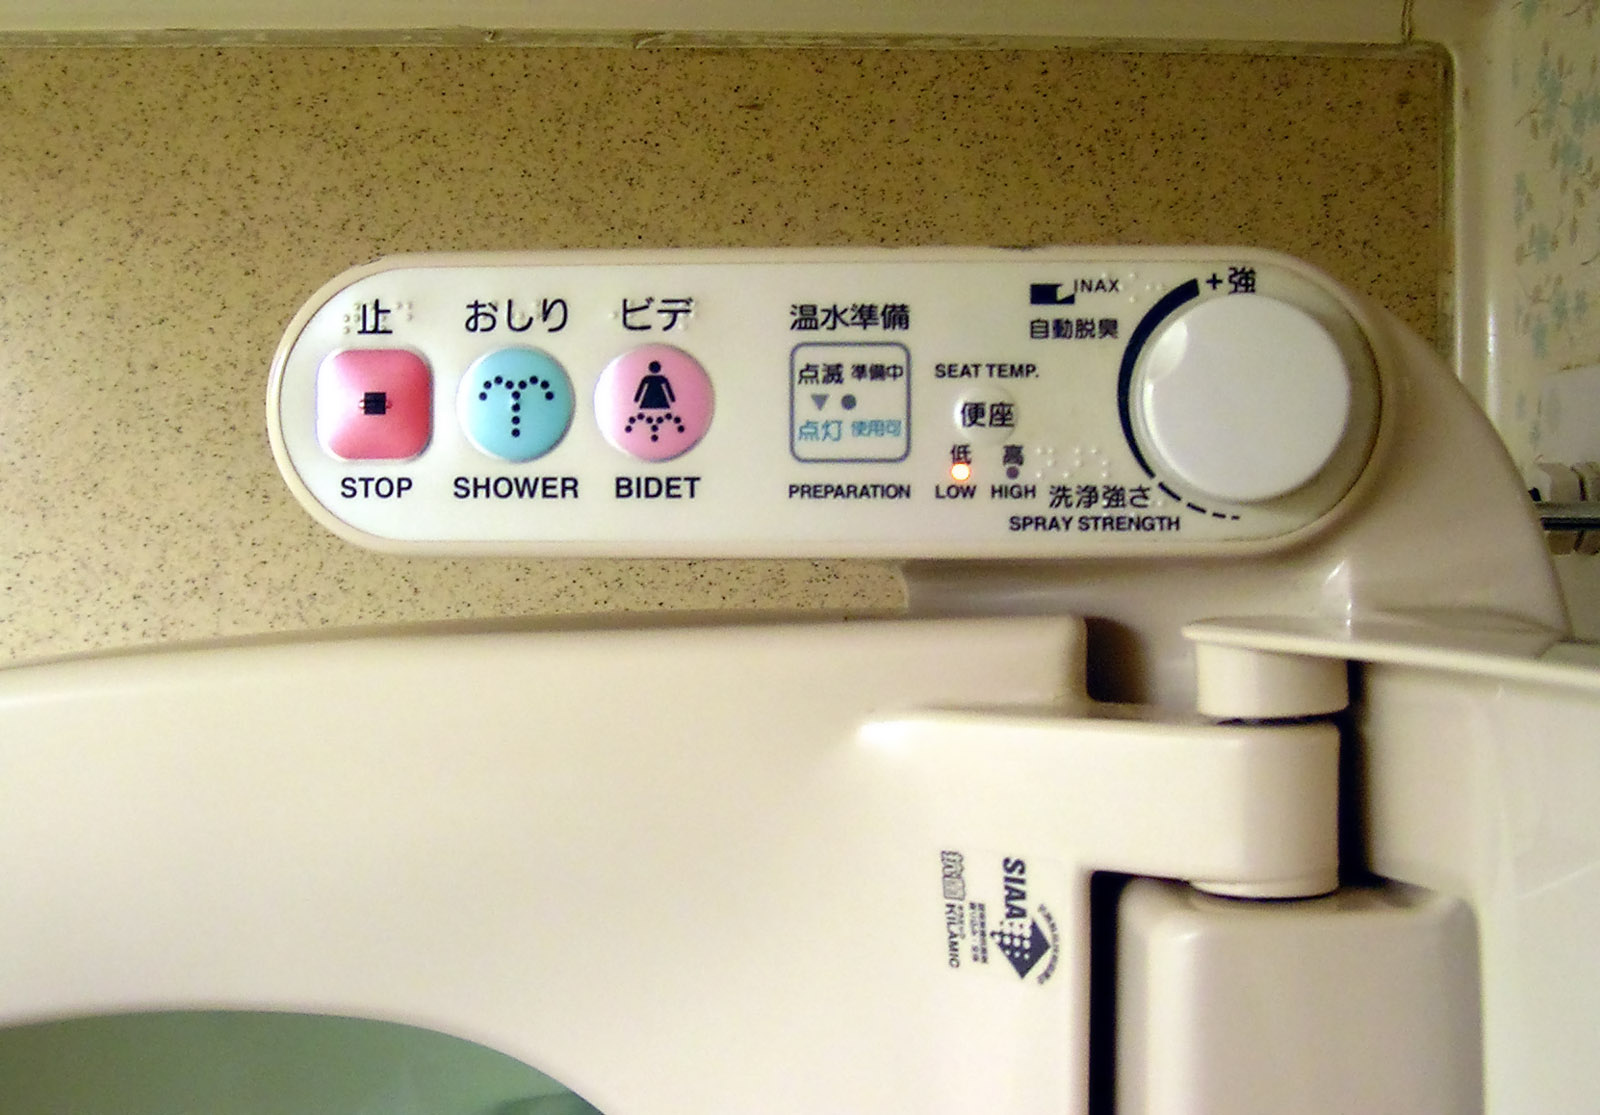 File:Modern japanese toilet.jpg - Wikimedia Commons